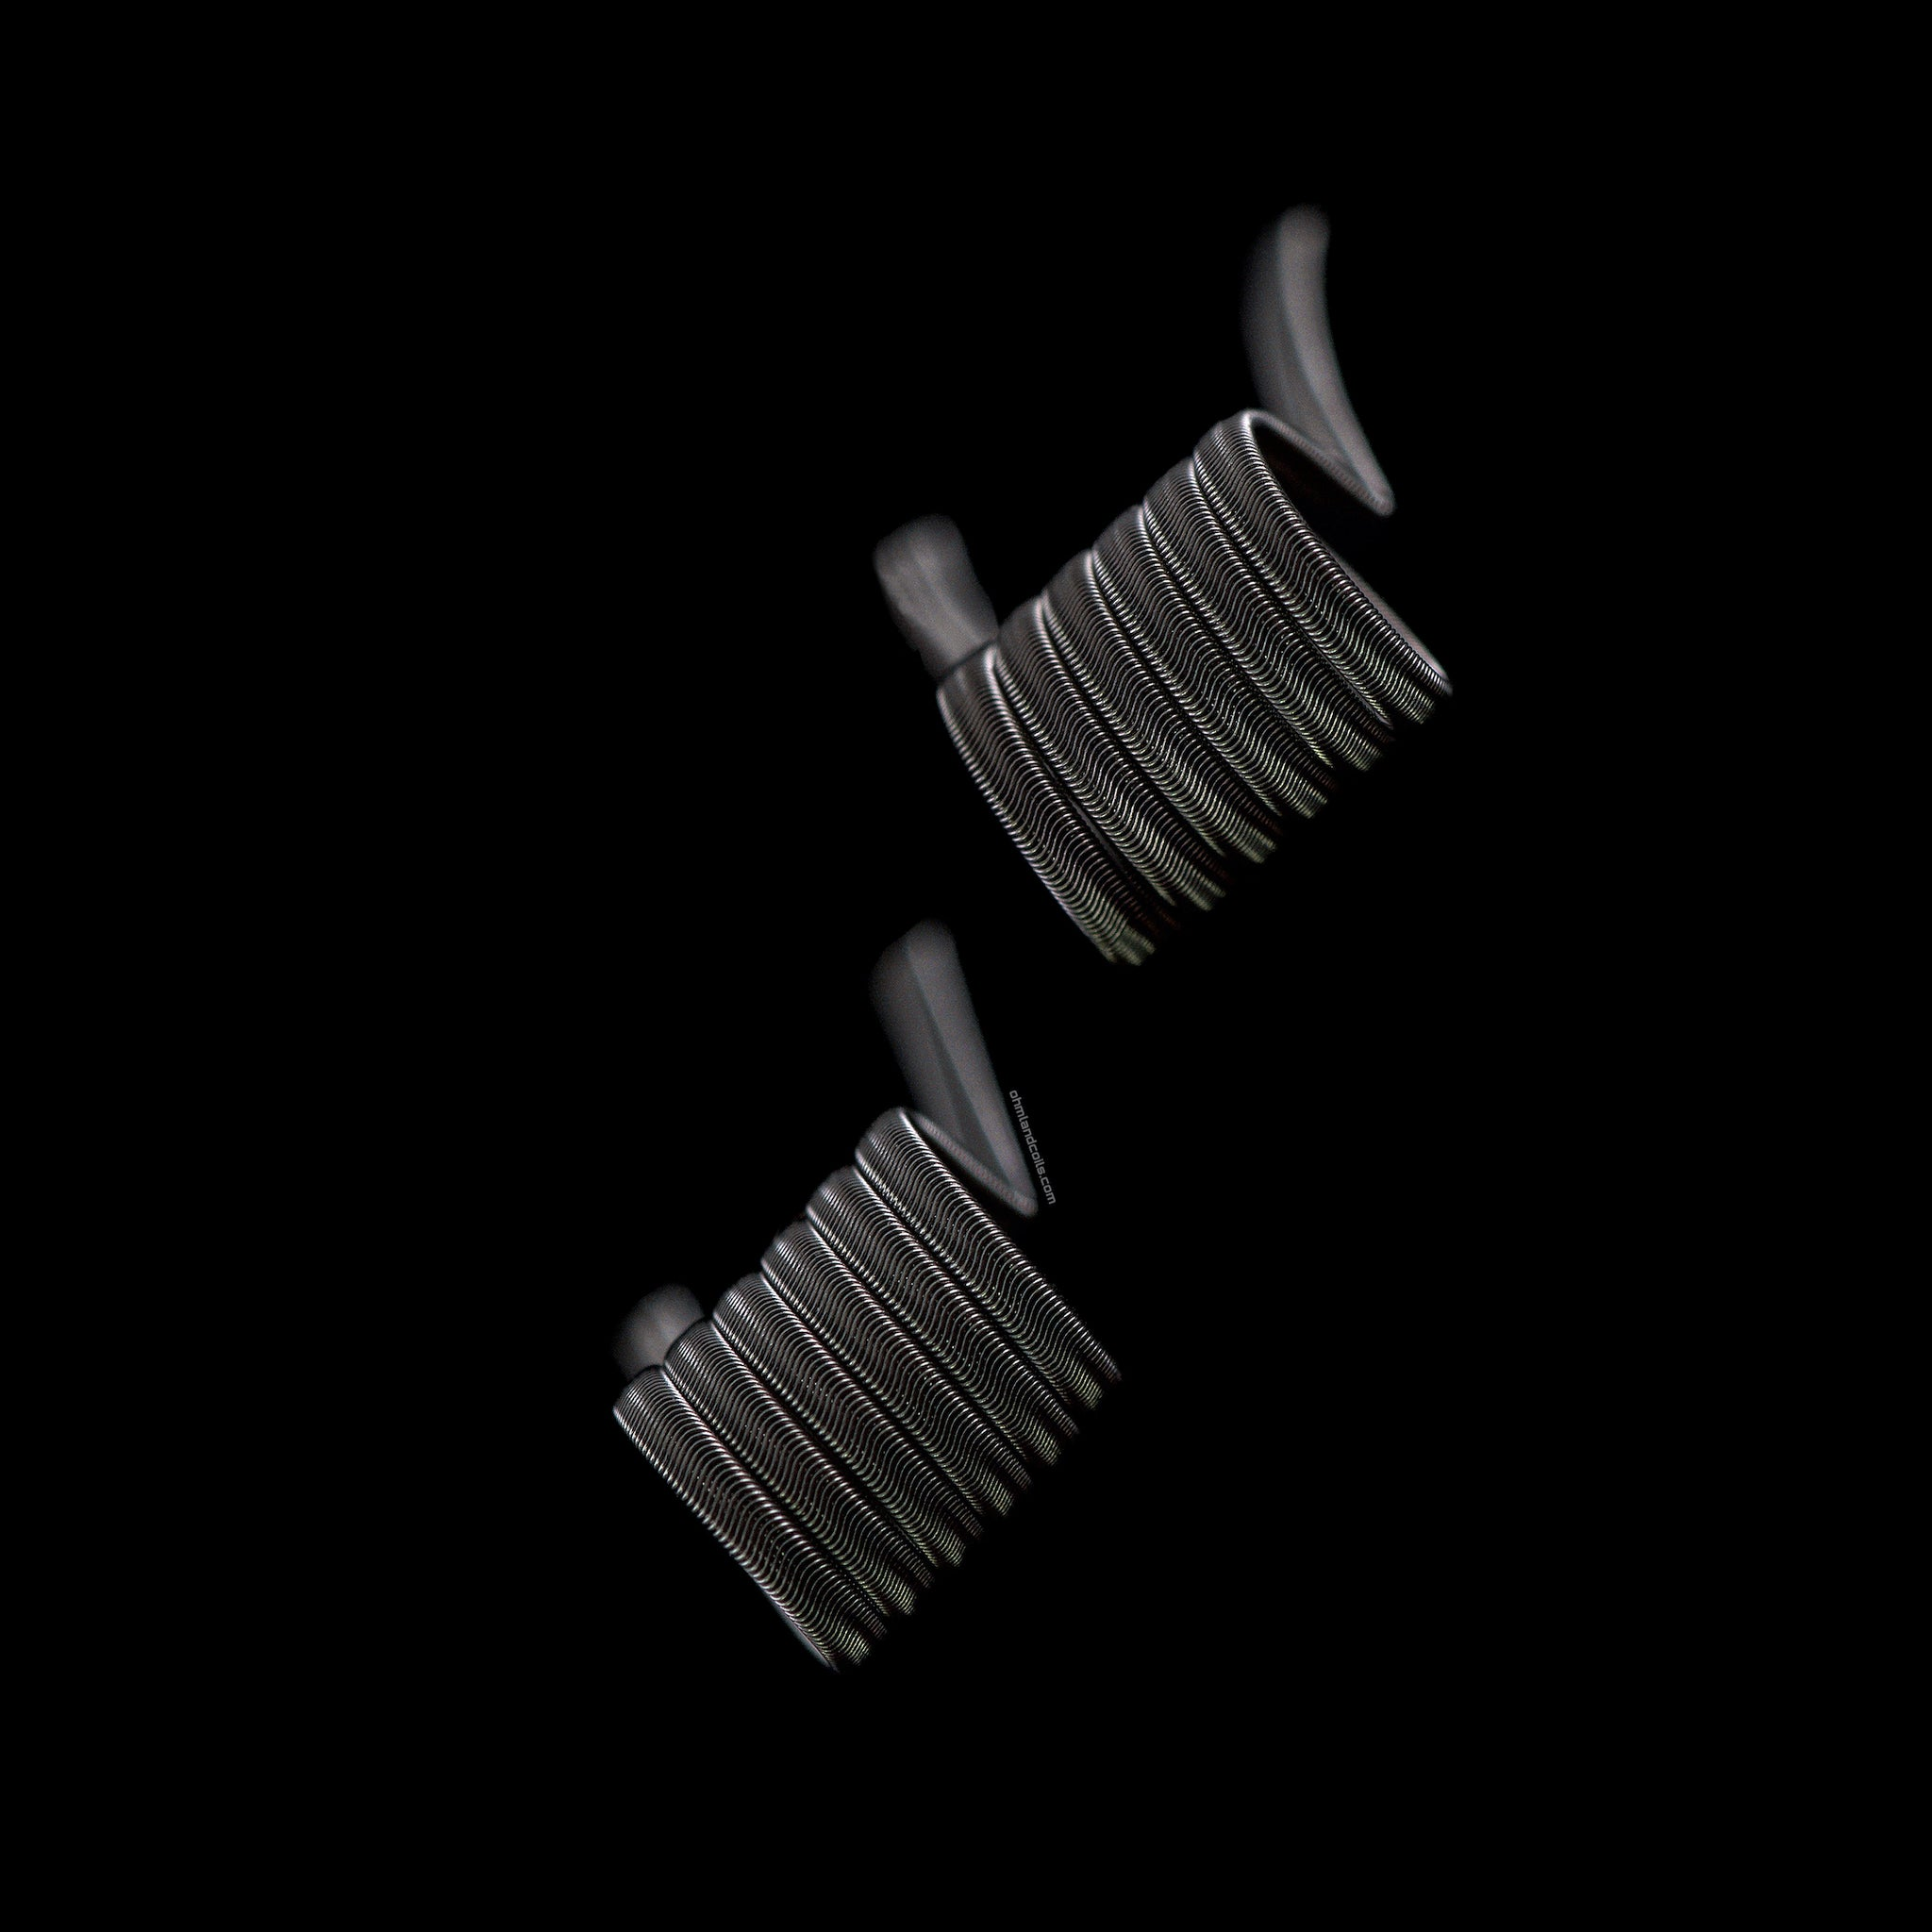 Alien framed Staple